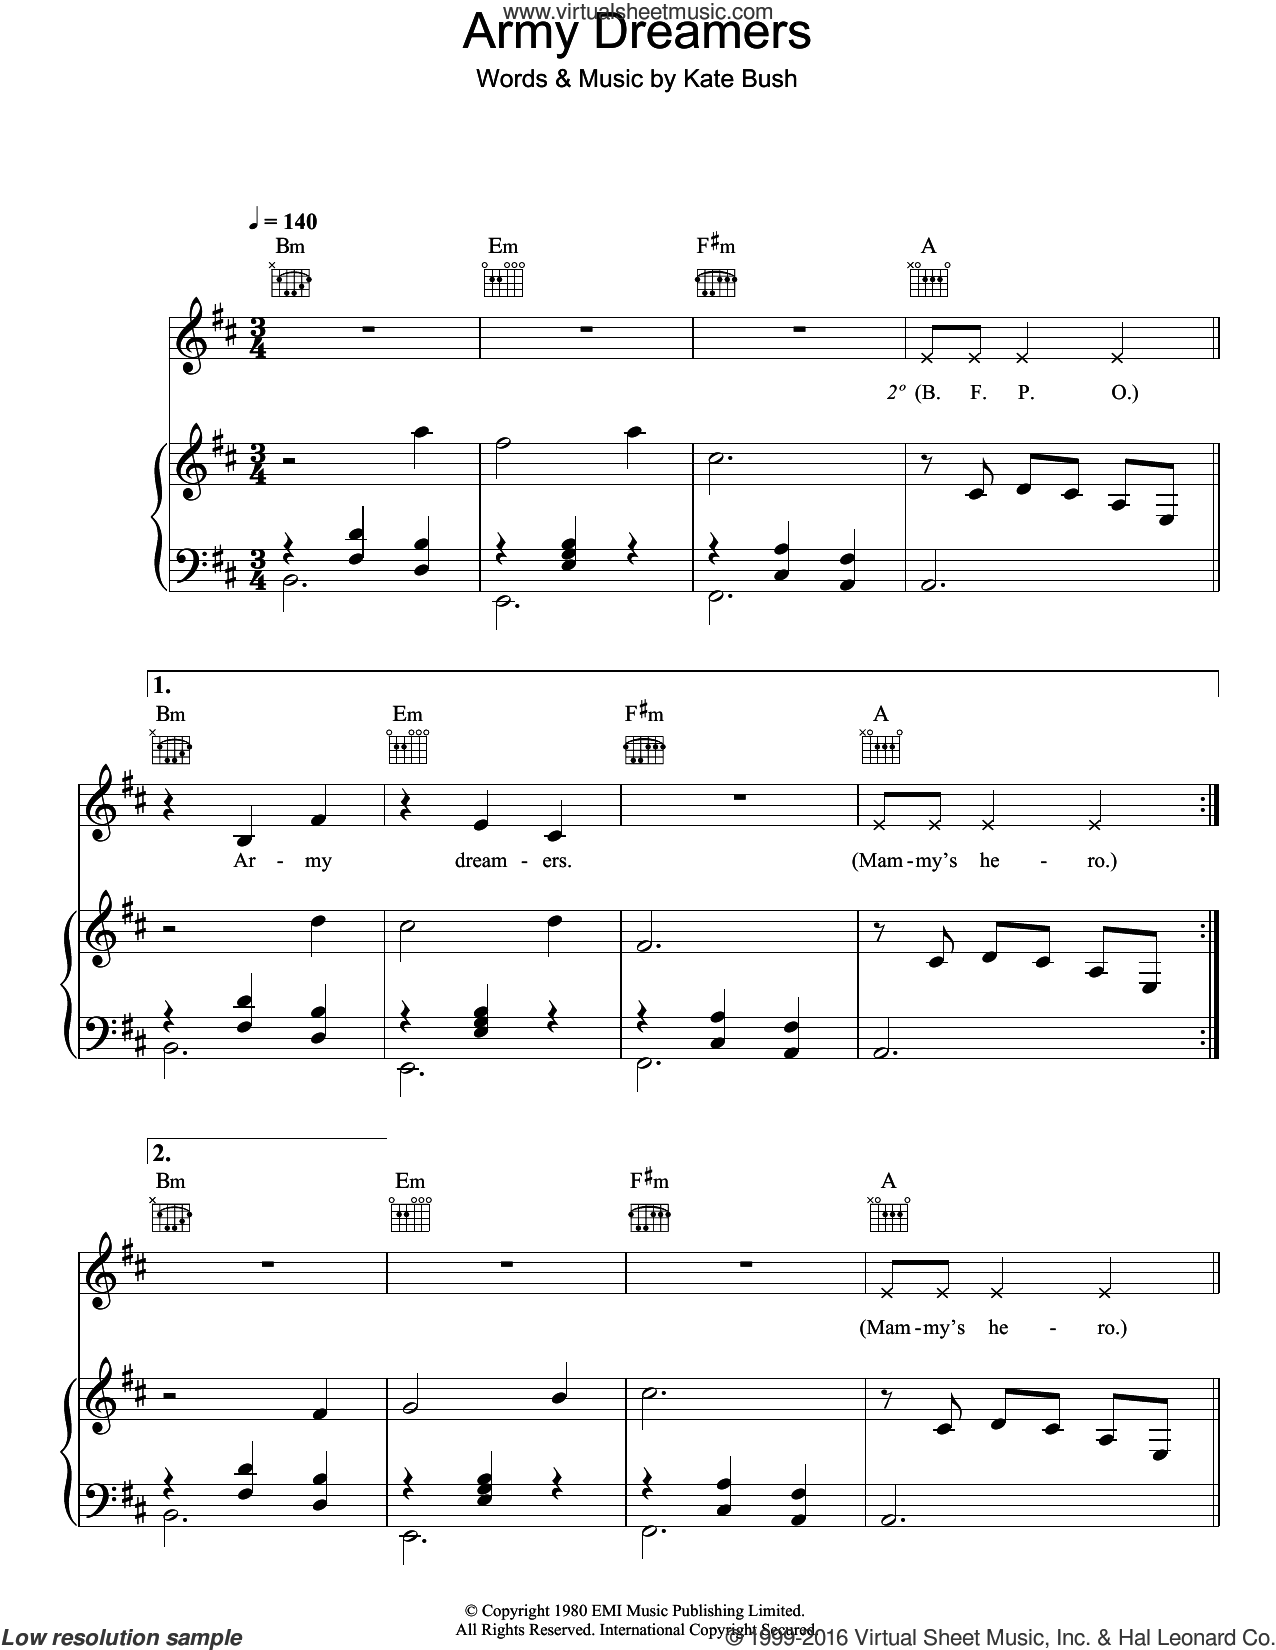 Army Dreamers sheet music for voice, piano or guitar by Kate Bush. Score Image Preview.